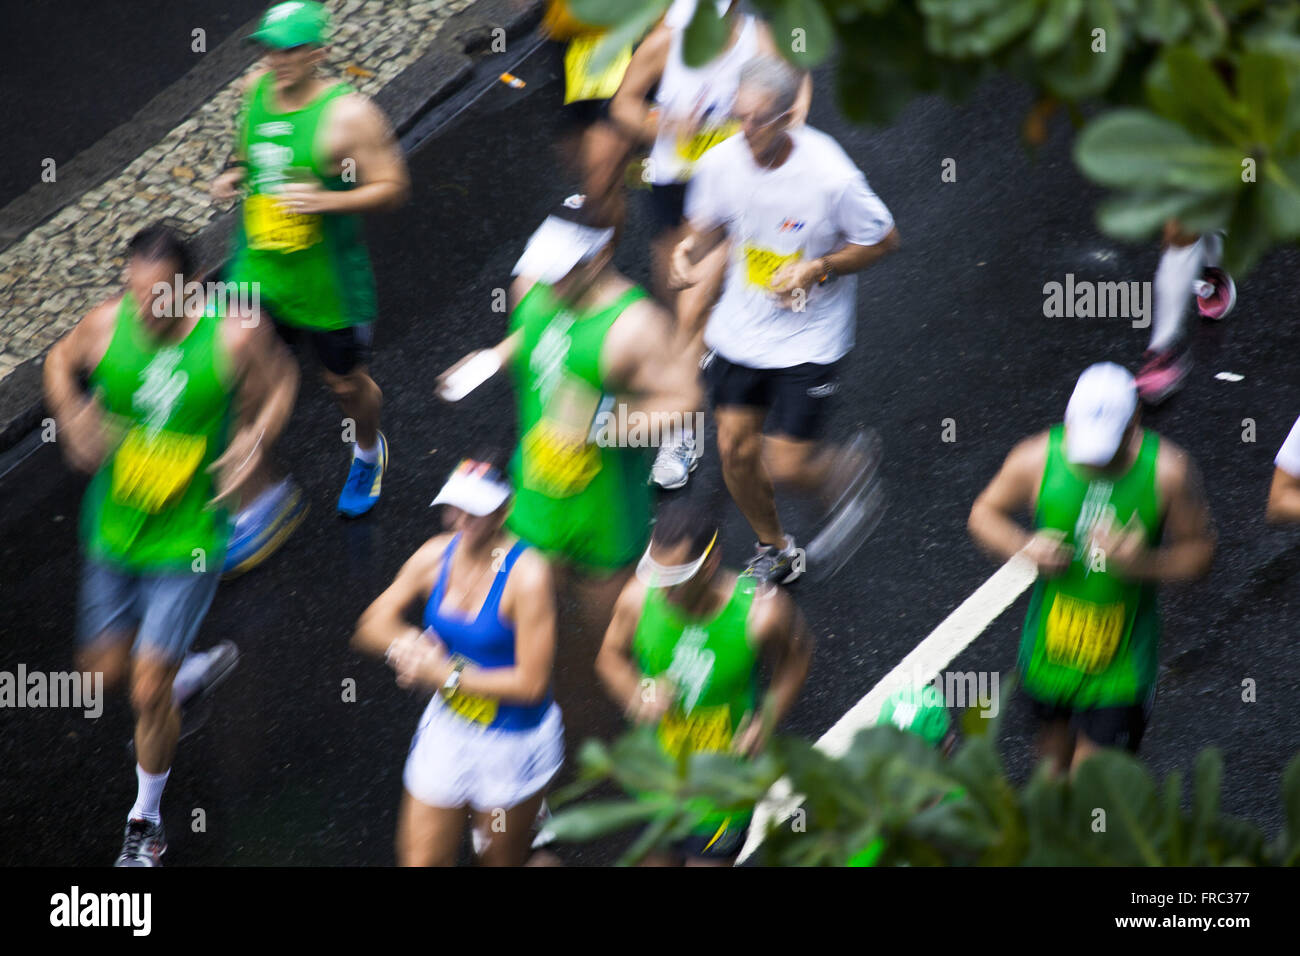 Top view of athletes in the Half Marathon in Rio de Janeiro Ipanema - Stock Image